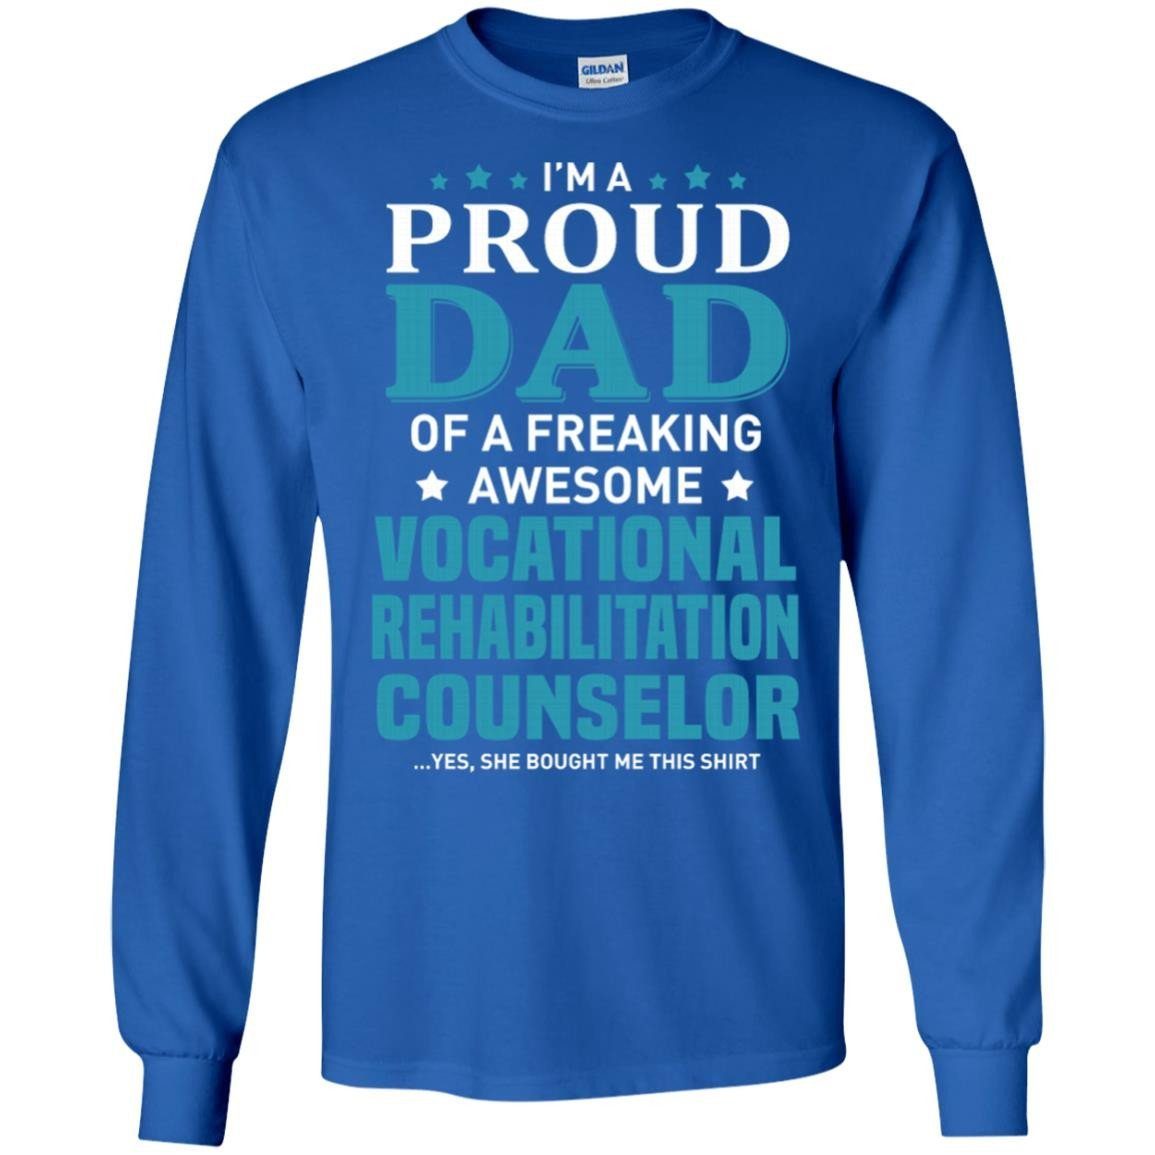 Vocational Rehabilitation Counselor T Shirt Long Sleeve 240 Alottee